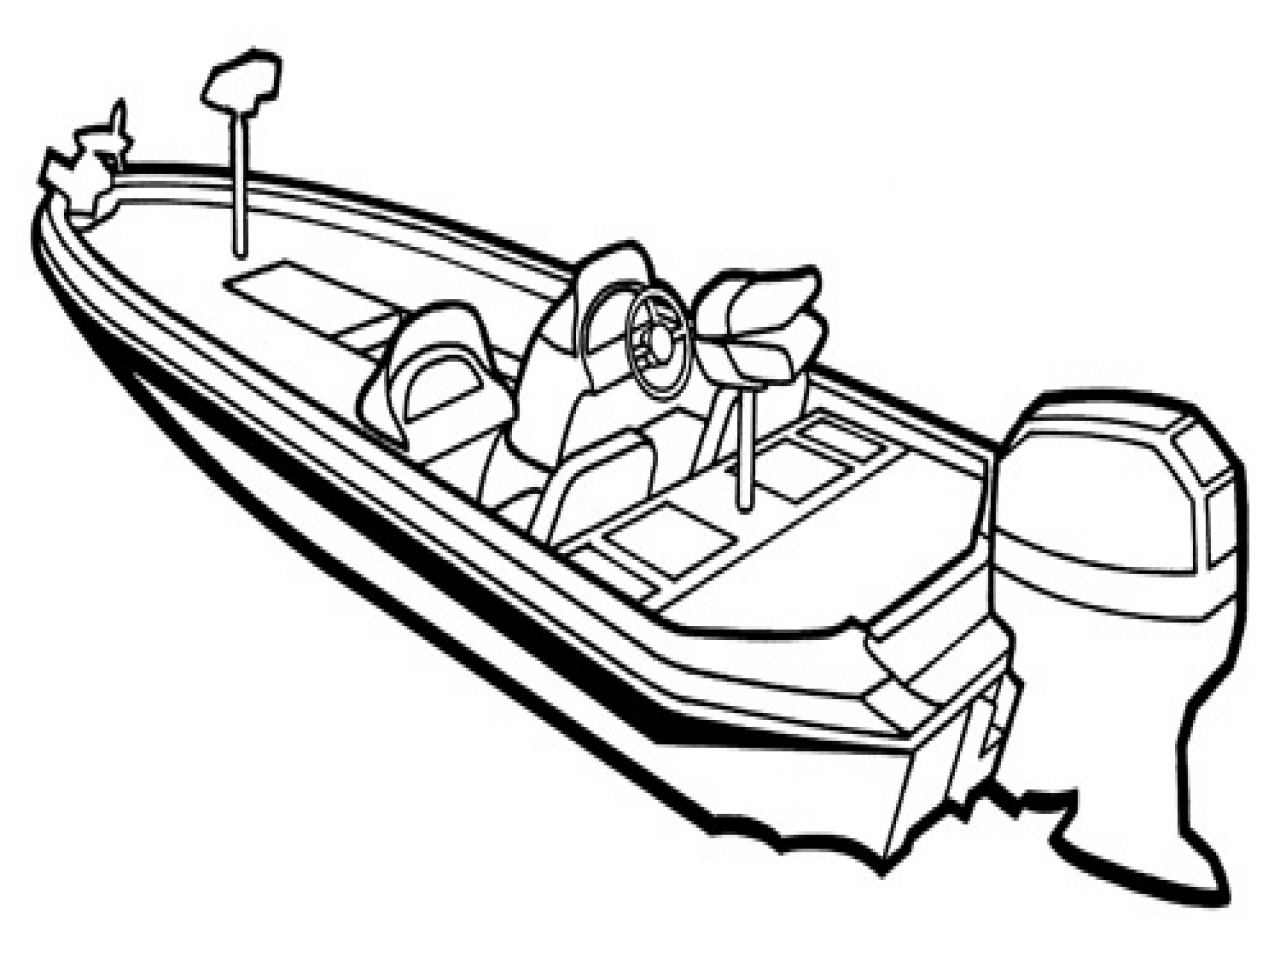 1280x960 Bass Boat Coloring Sheet Pages Lego Kids